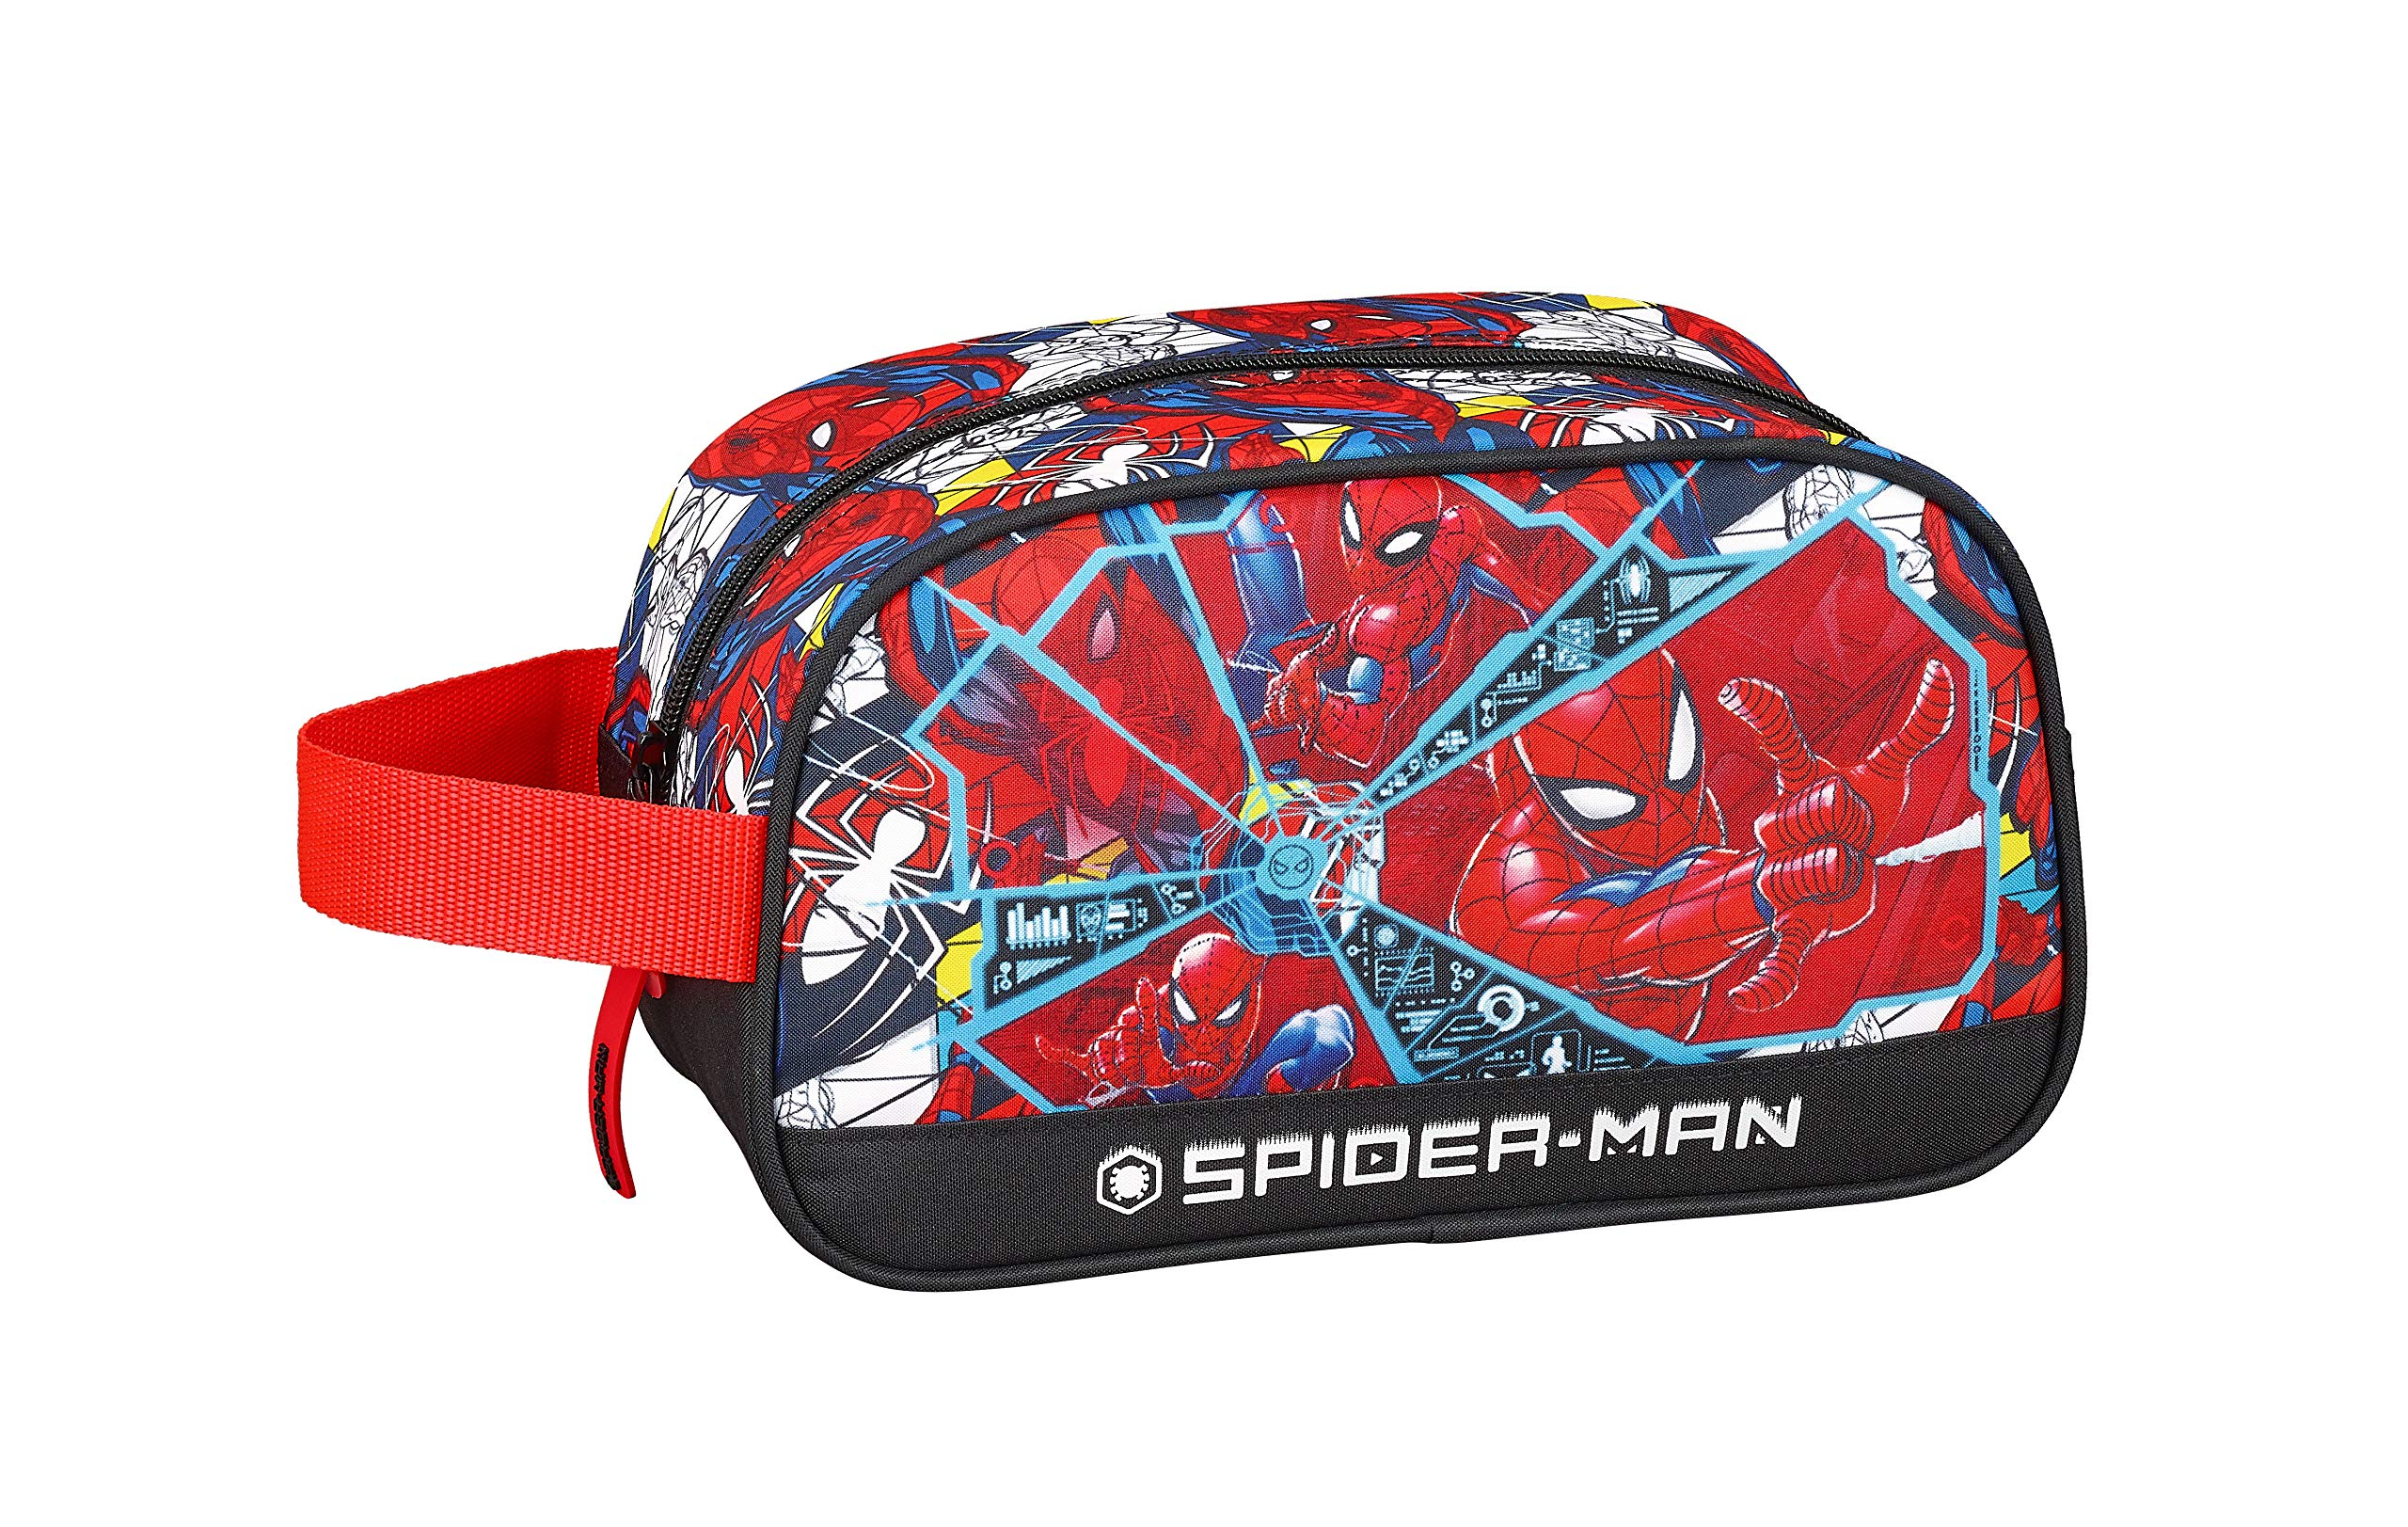 Spiderman «Super Hero» Oficial Mochila Escolar Infantil Mediano con Asa 260x120x150mm